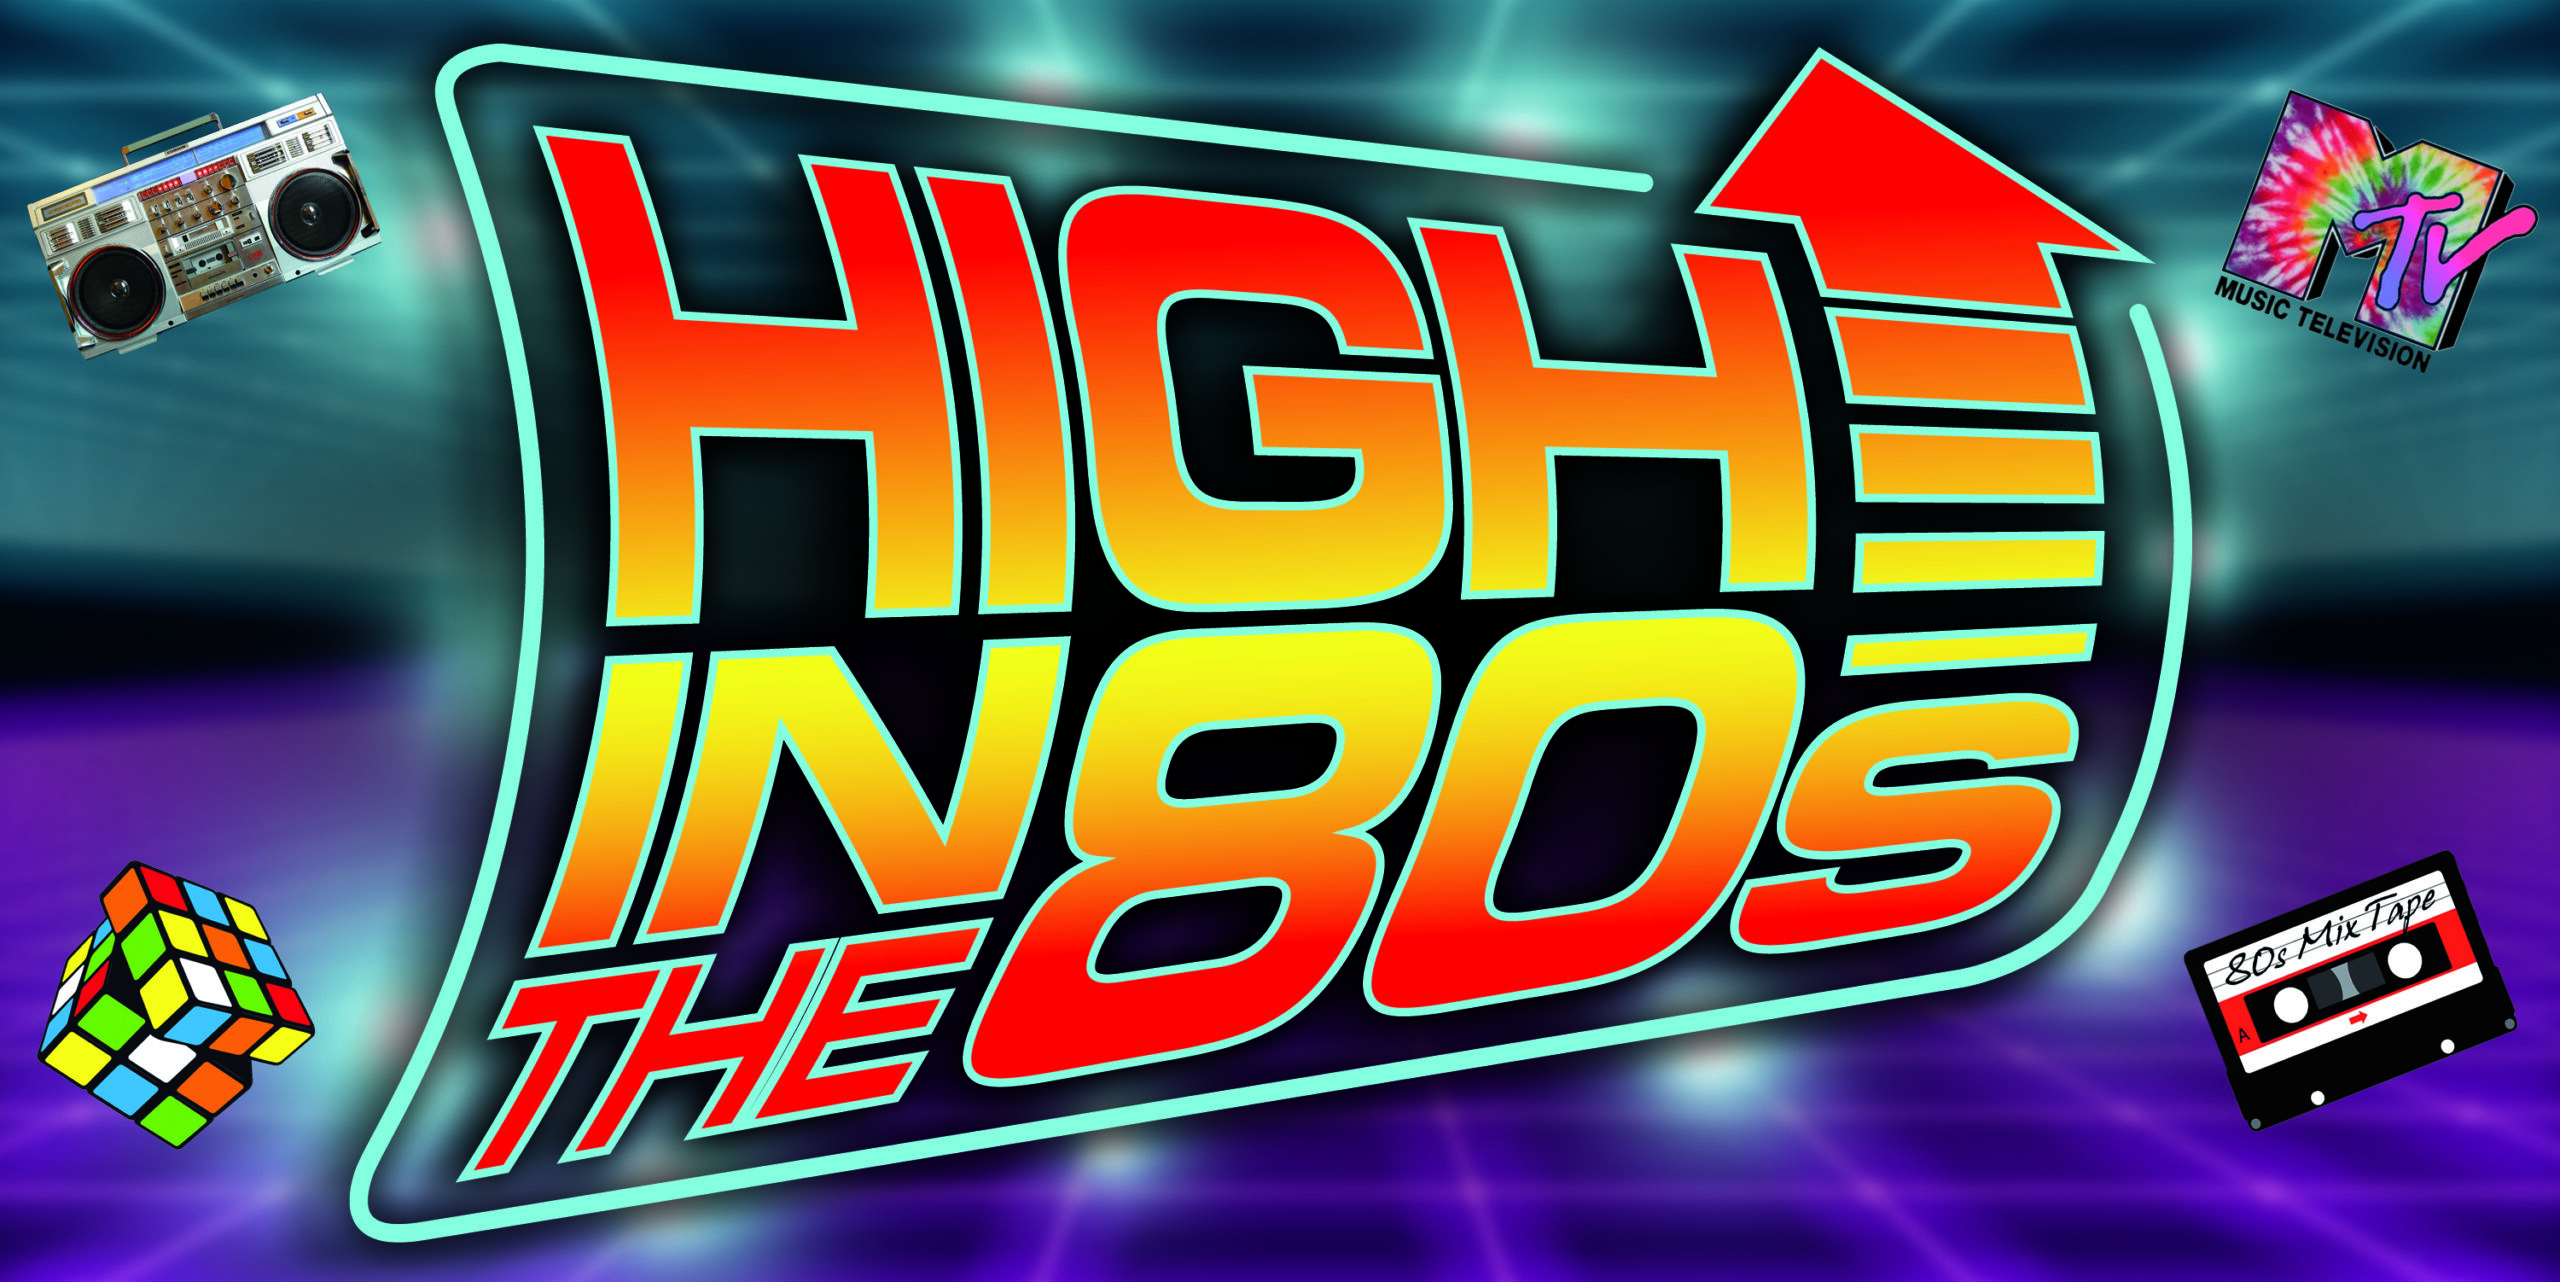 High In the 80s Band Logo